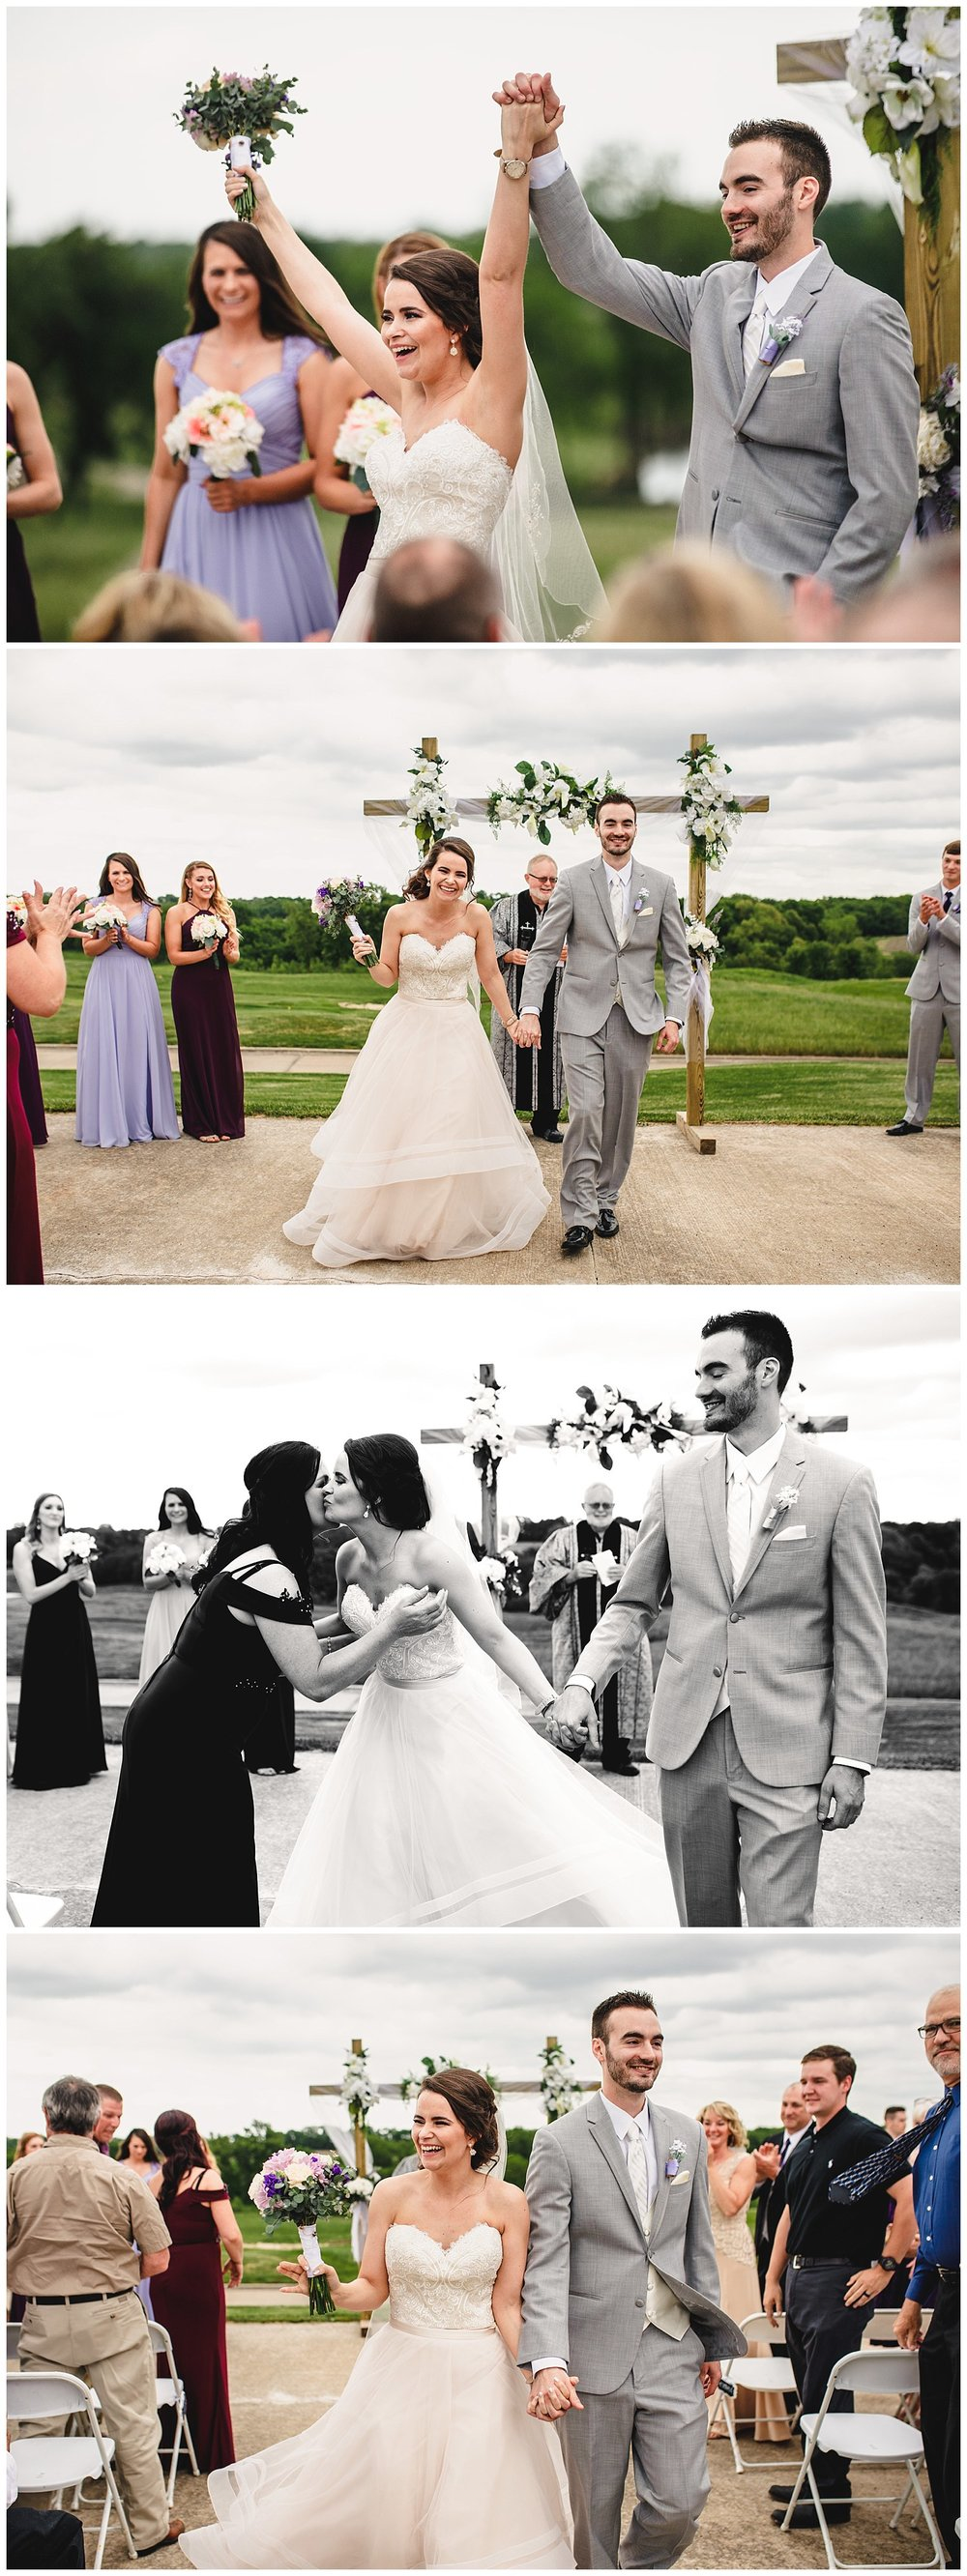 Tiffany_Greens_Golf_Club_Kansas_City_Wedding_Nikki_David_Spring_Wedding_Kelsey_Diane_Photography_0038.jpg